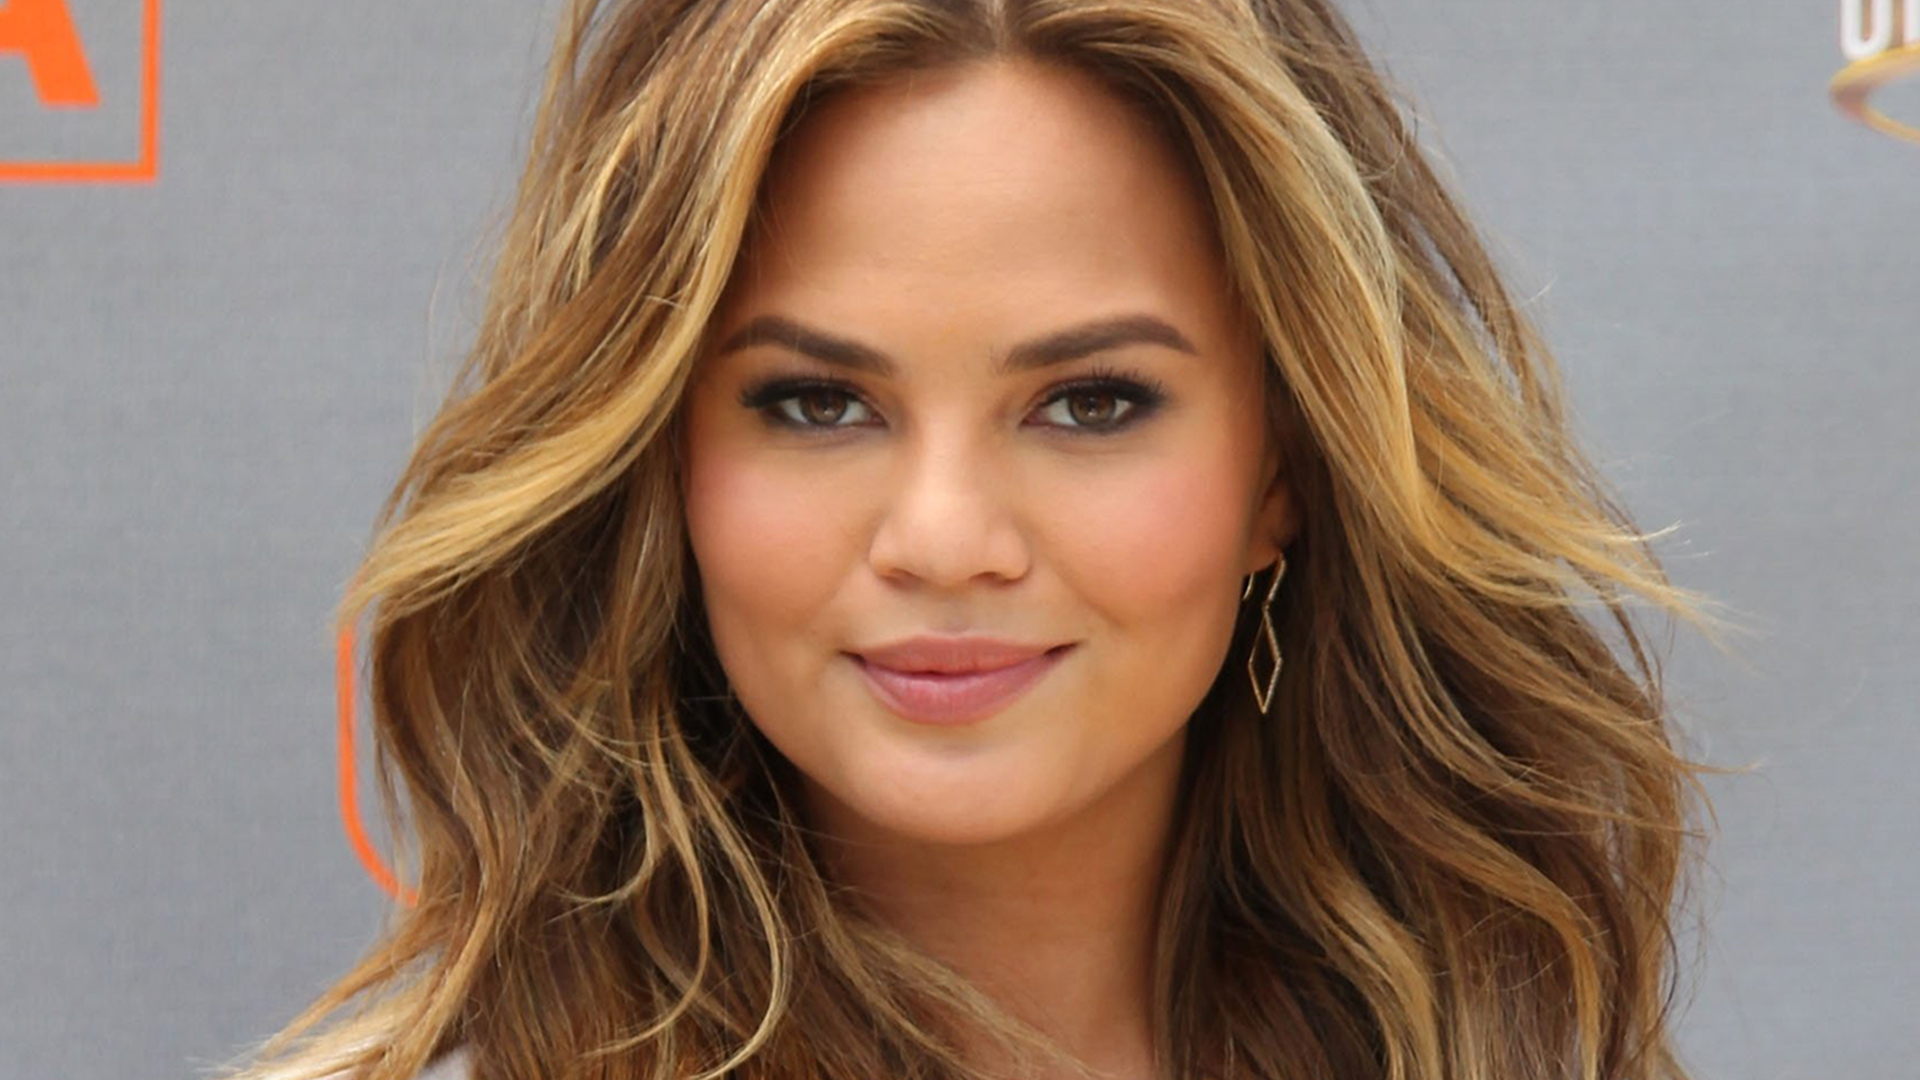 chrissy teigen face wallpaper 63450